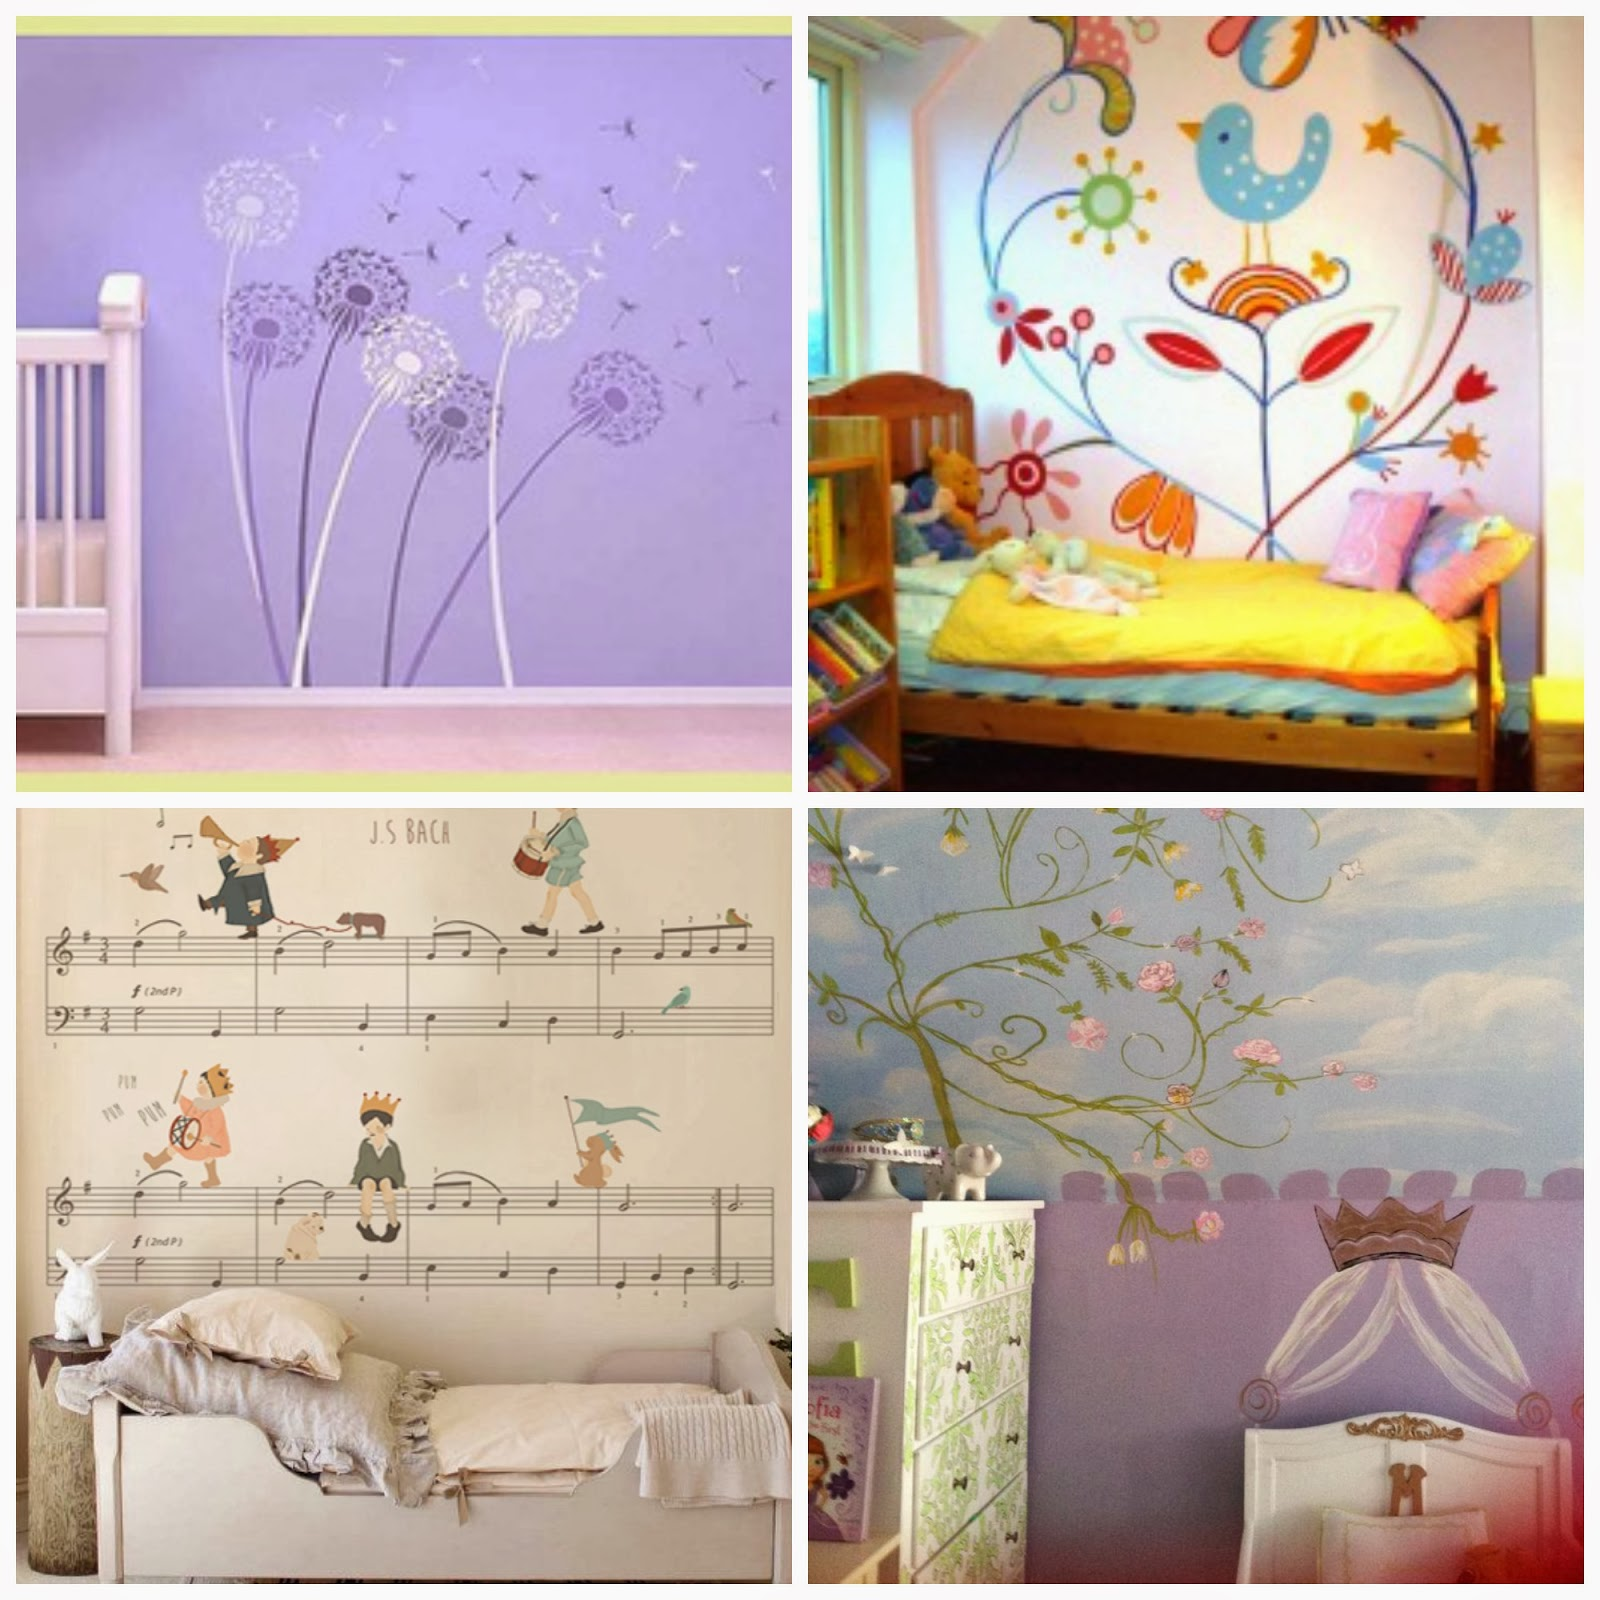 Favorite places and spaces on pinterest vignettes for Mural collage